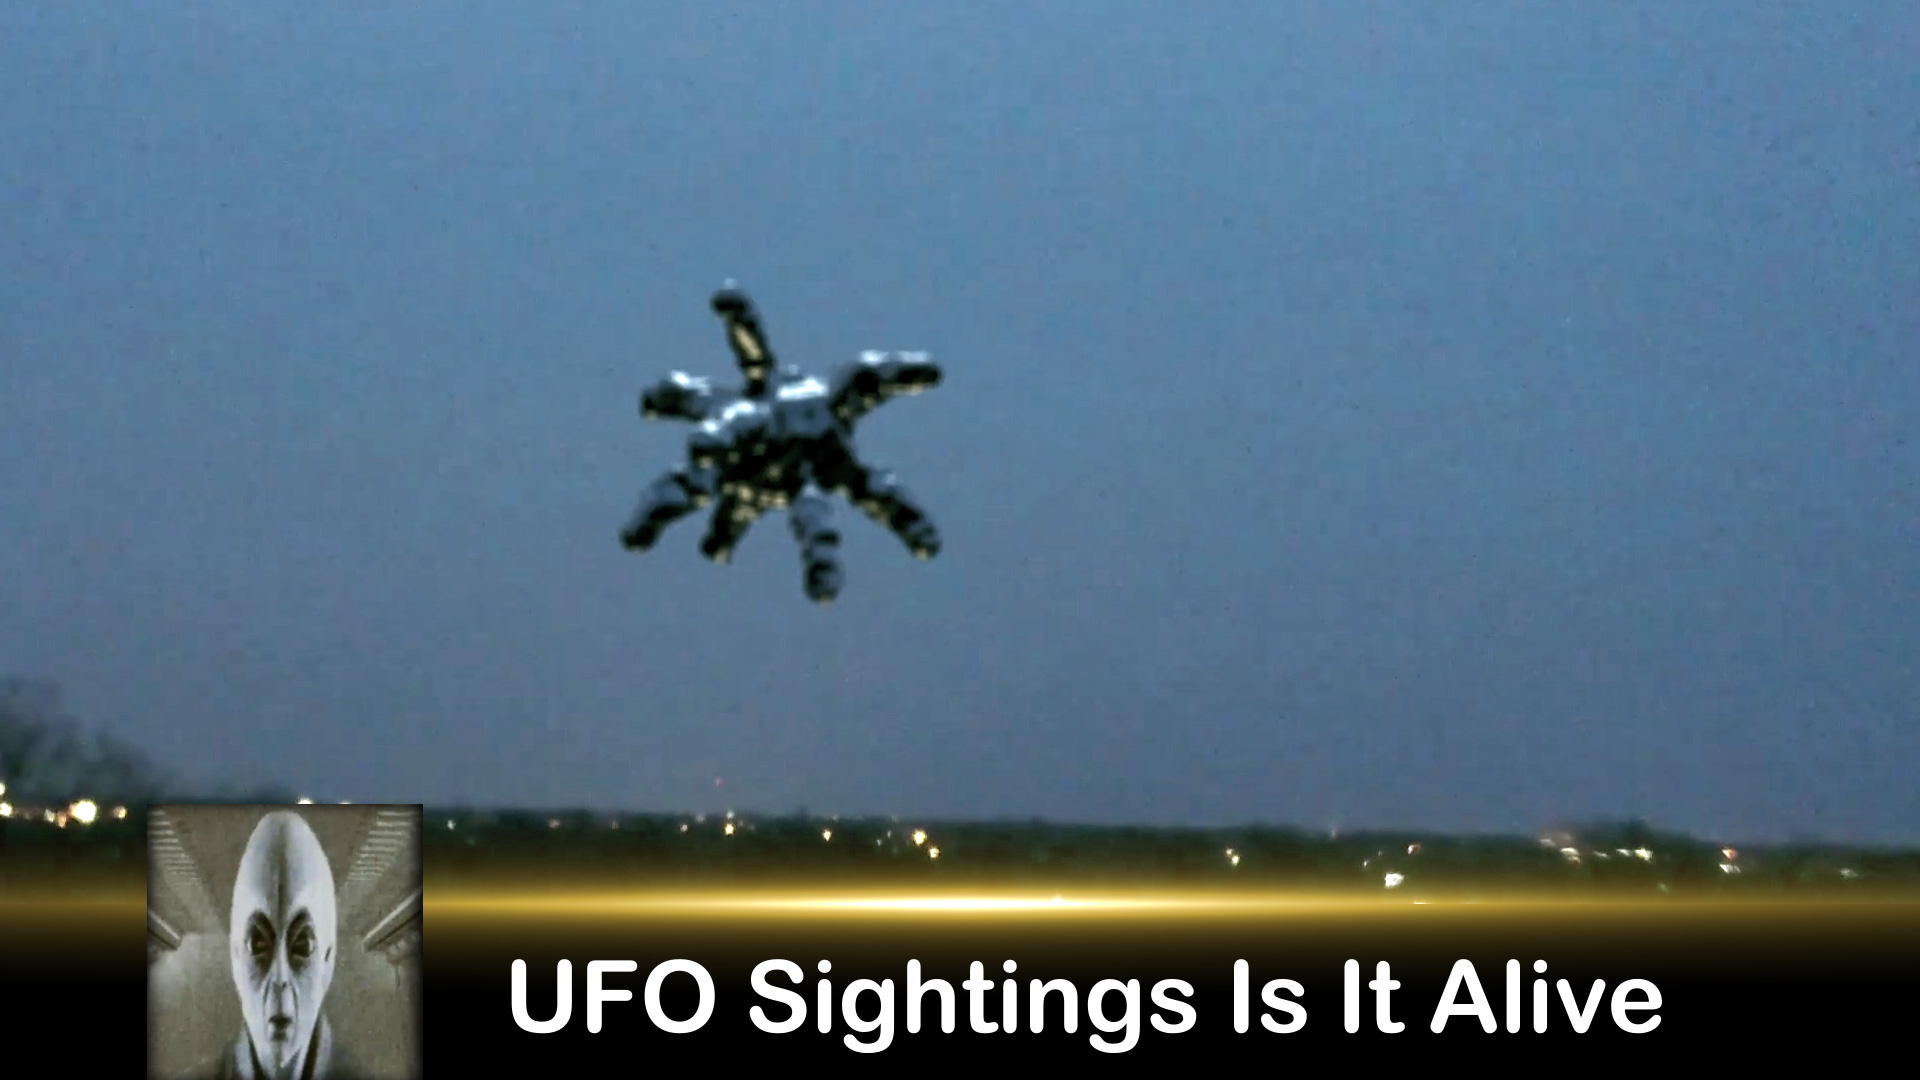 UFO Sightings Is It Alive August 2nd 2017